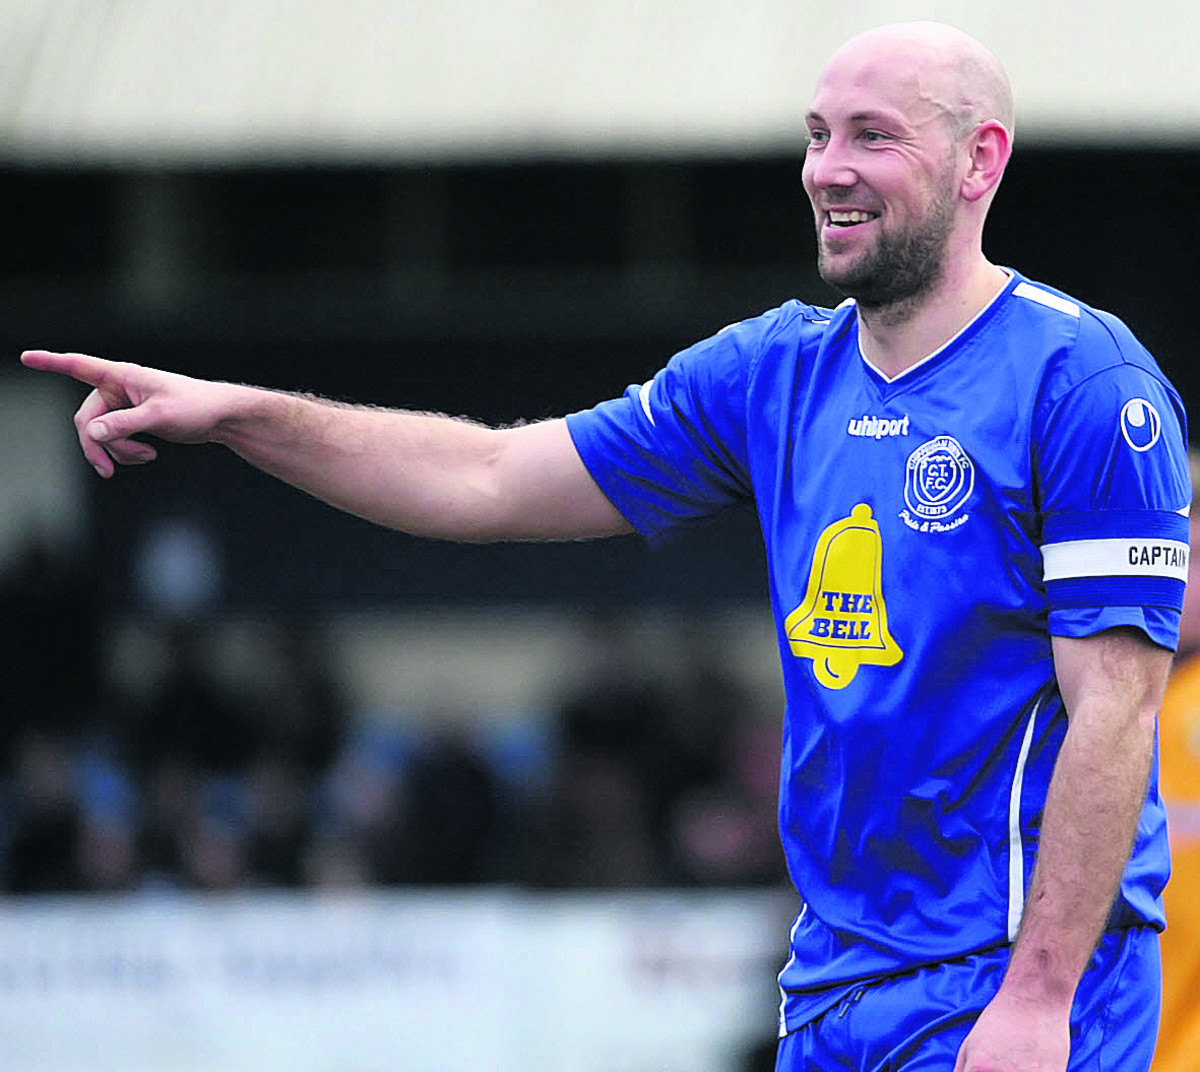 Alan Griffin netted for Chippenham Town